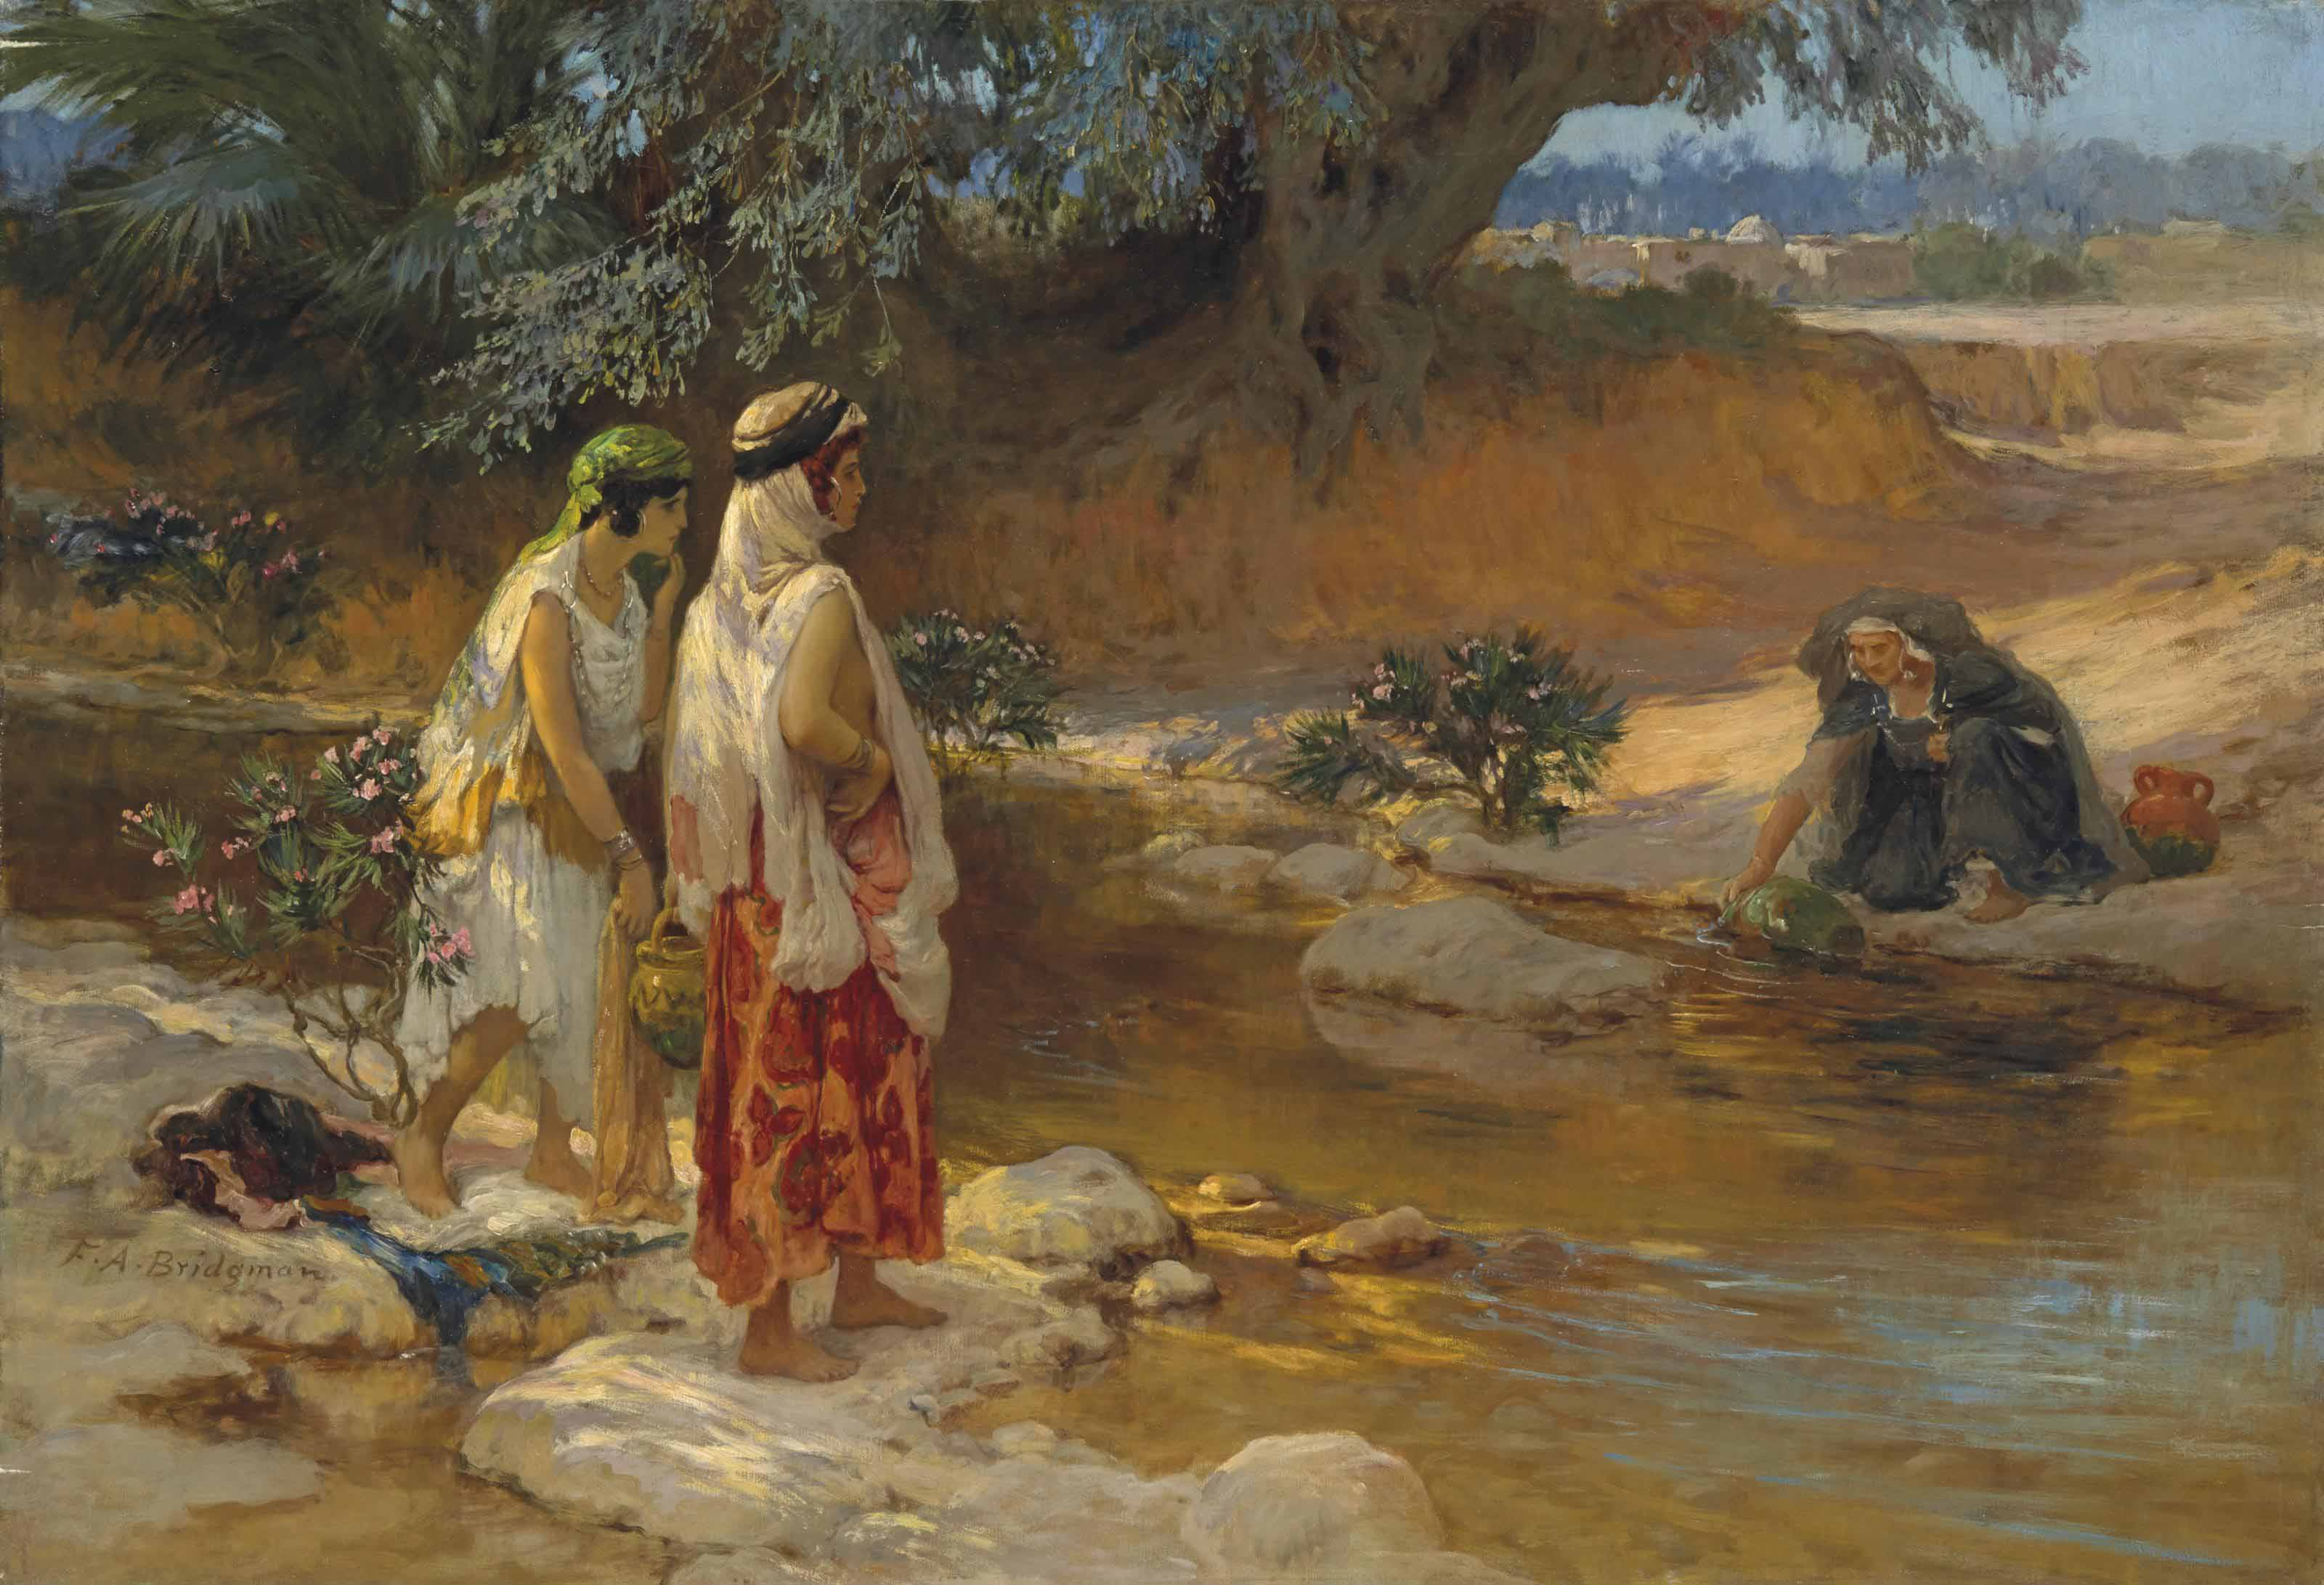 On the Banks of the Wadi